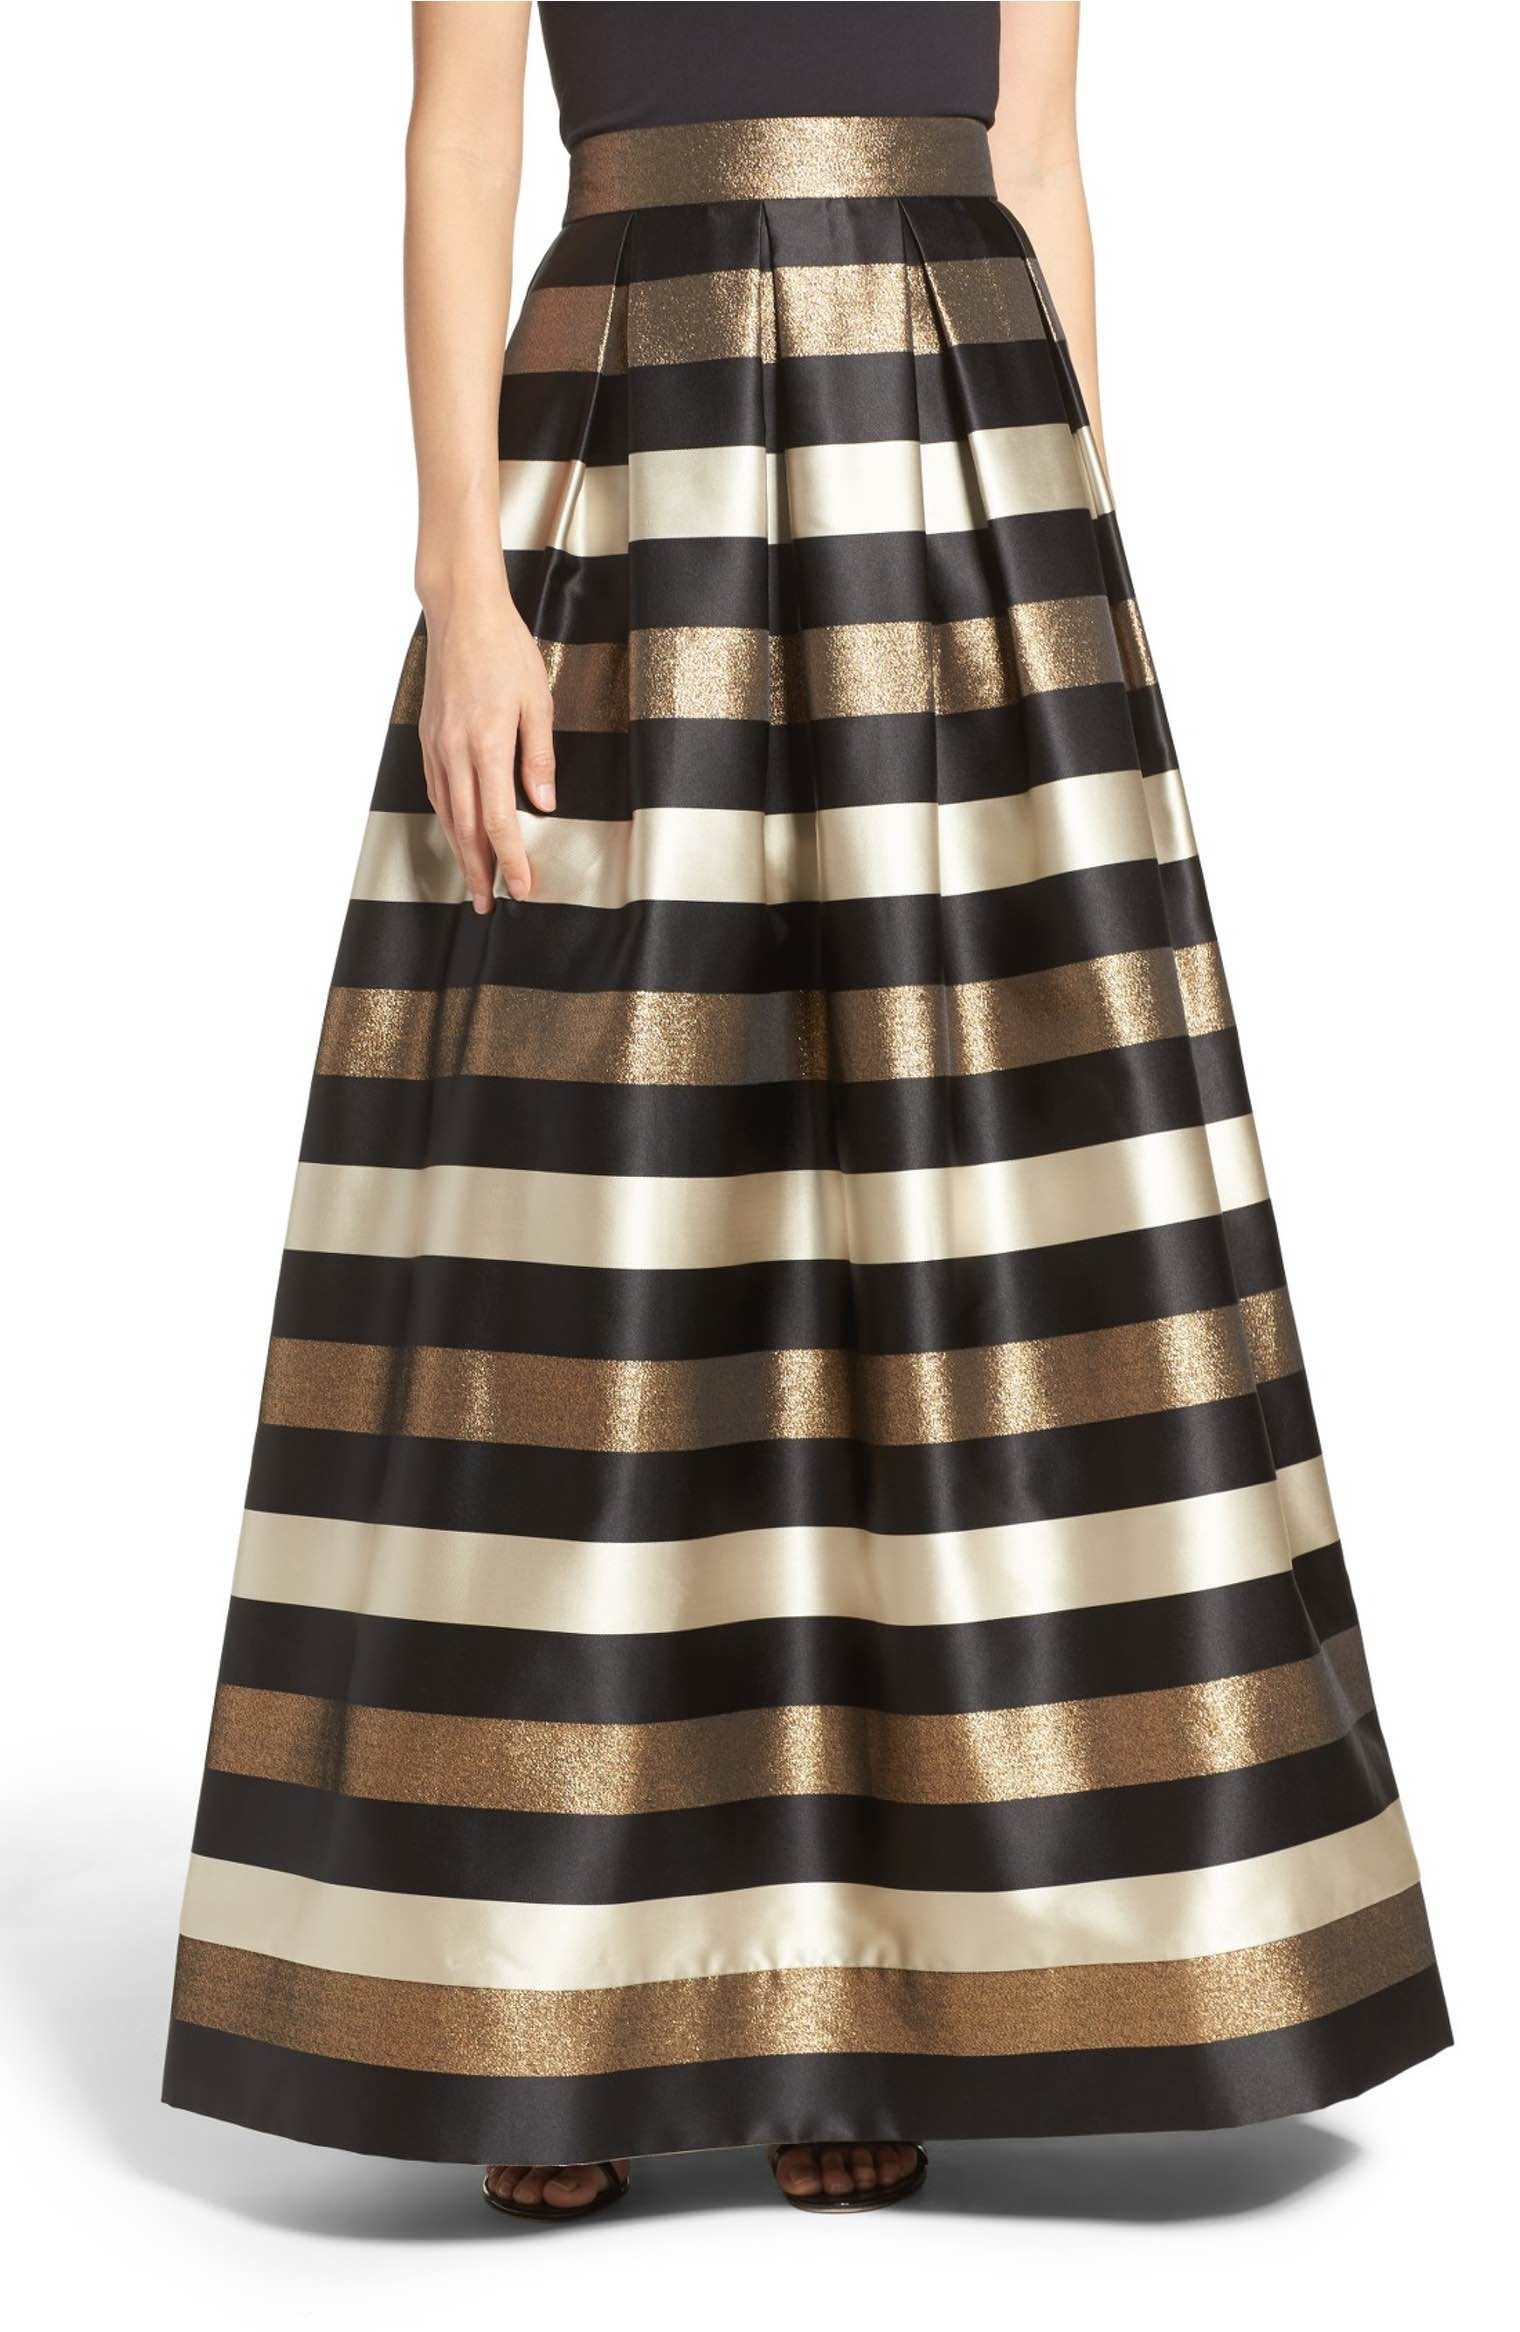 Main image eliza j metallic stripe ball skirt get the look